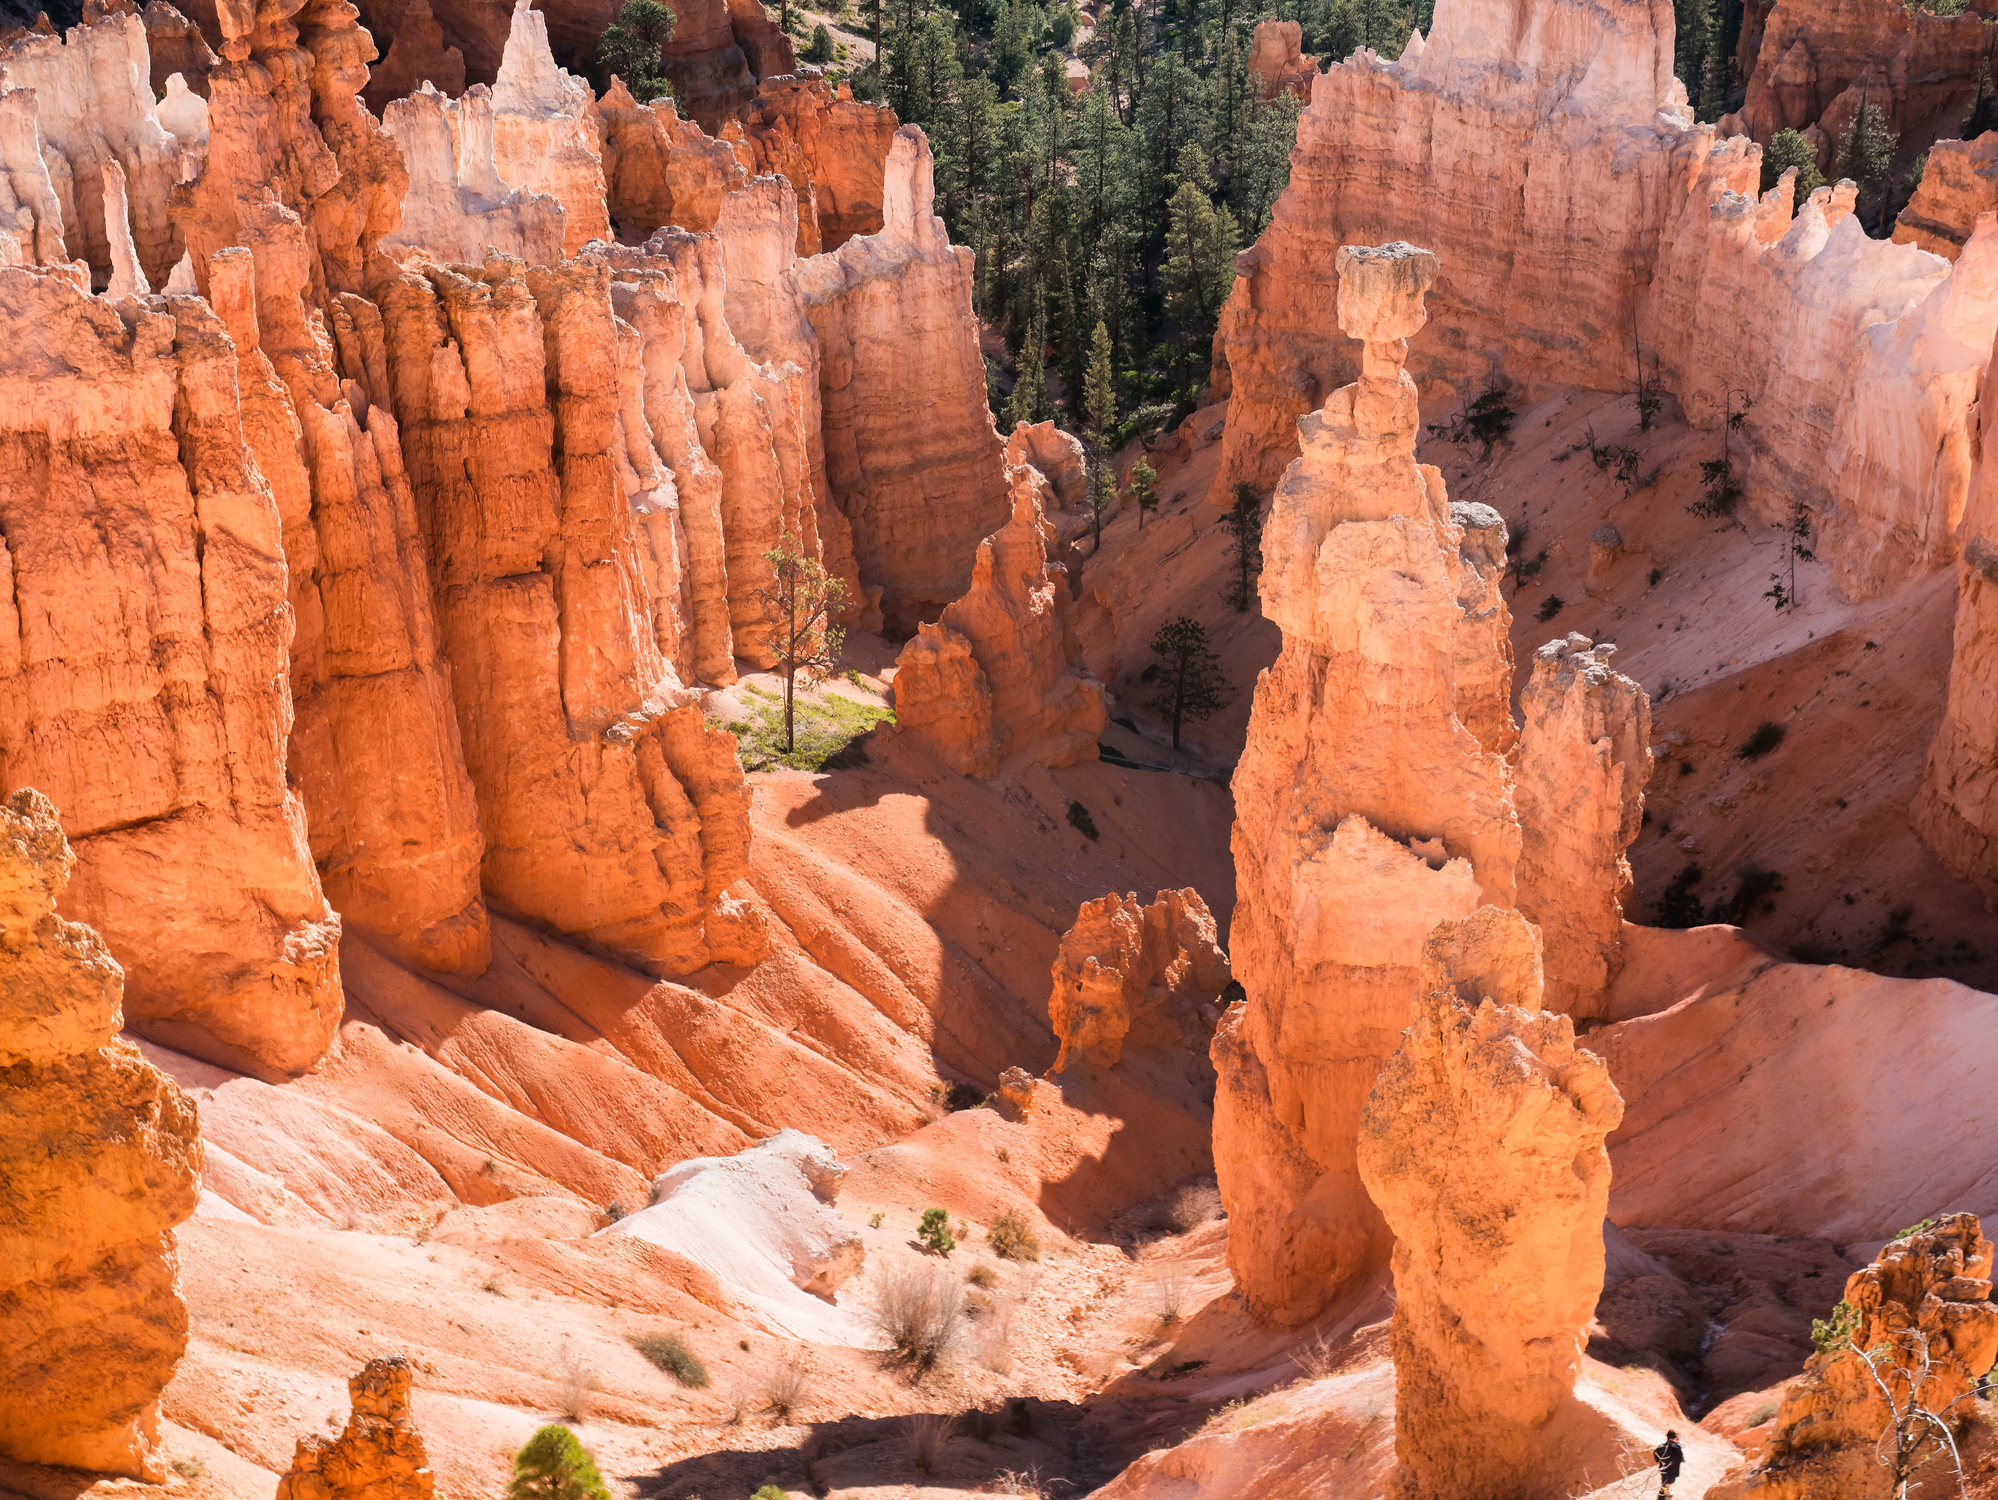 Explore Bryce Canyon National Park via the Navajo Loop and Queens Garden trails.